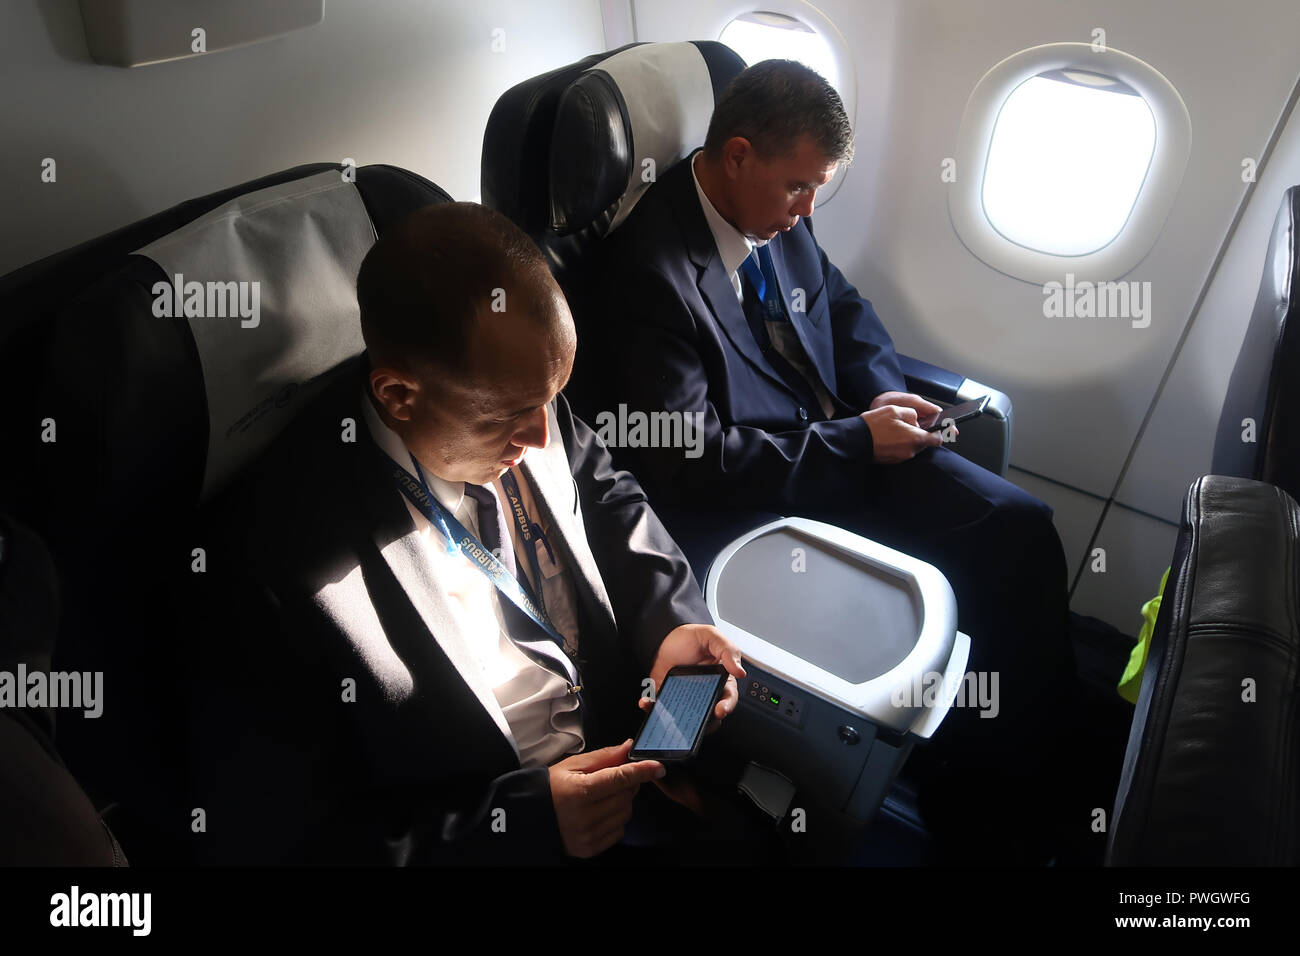 Passengers using their smart phones inside an airplane of National Air Company Uzbekistan Airways - Stock Image